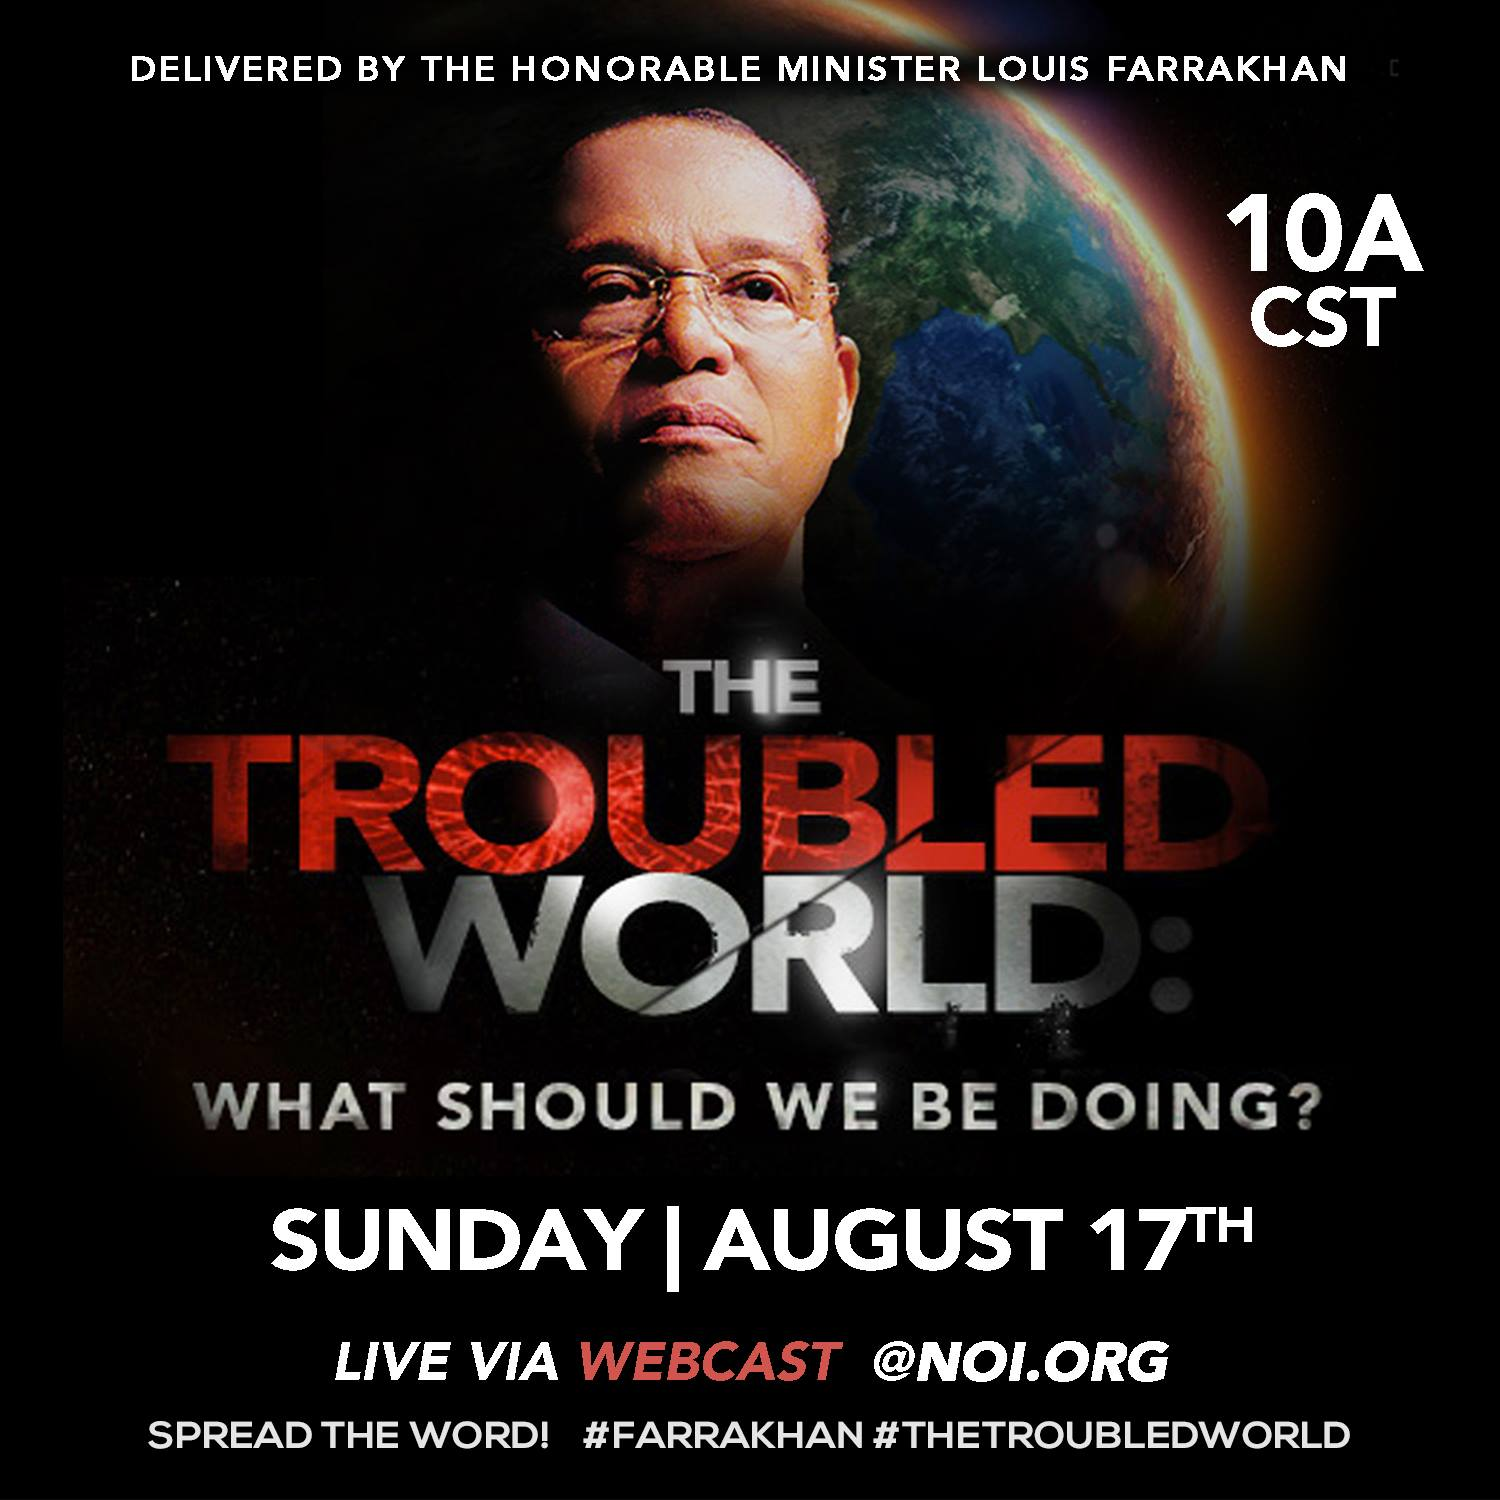 [VIDEO] More reasons why we ALL should watch Hon. Louis Farrakhan speak Sun. Aug. 17